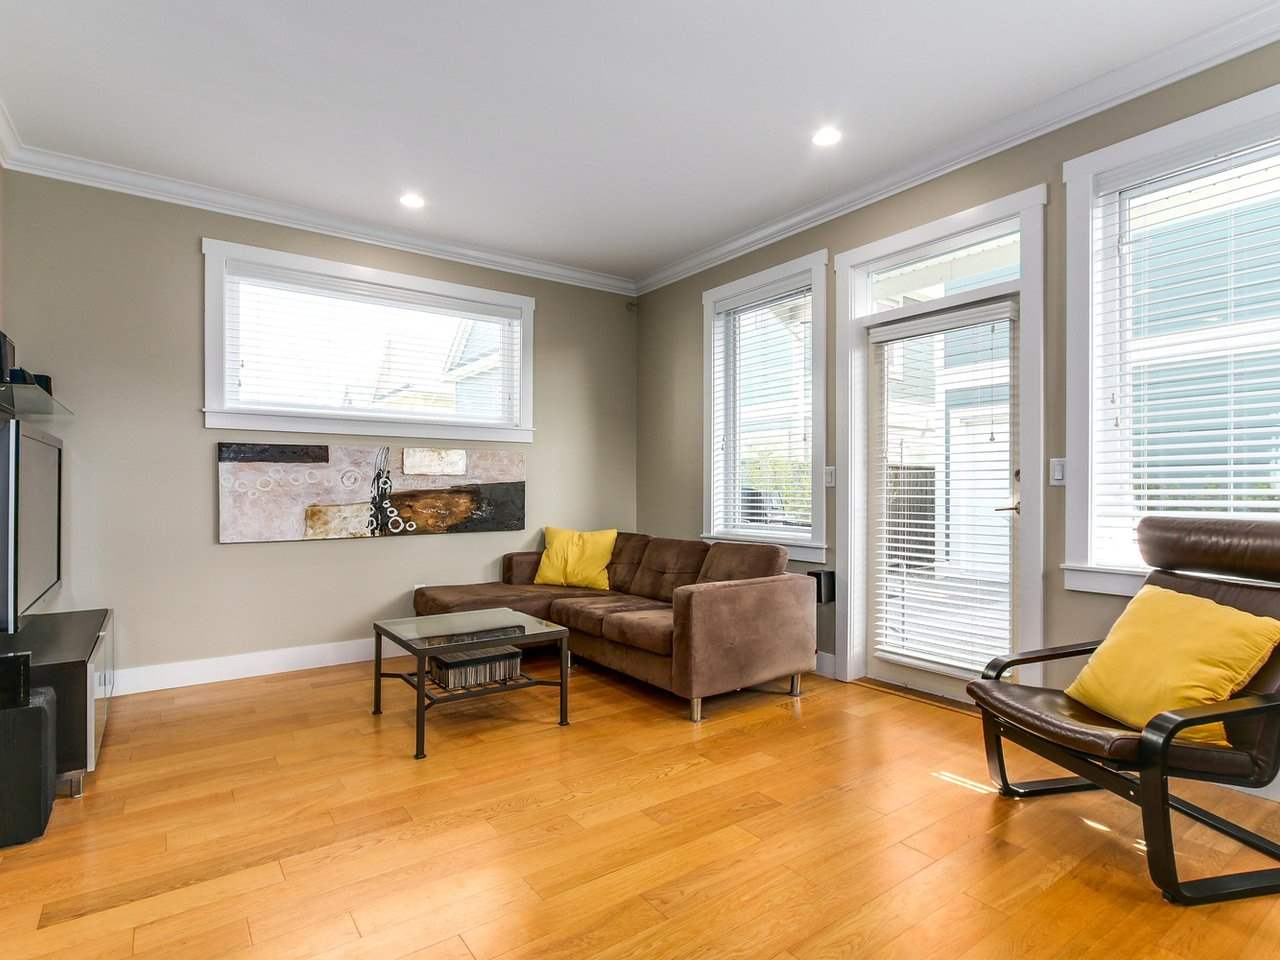 "Photo 7: 4870 LINDEN Drive in Delta: Hawthorne House for sale in ""LINDEN MEWS"" (Ladner)  : MLS(r) # R2178579"